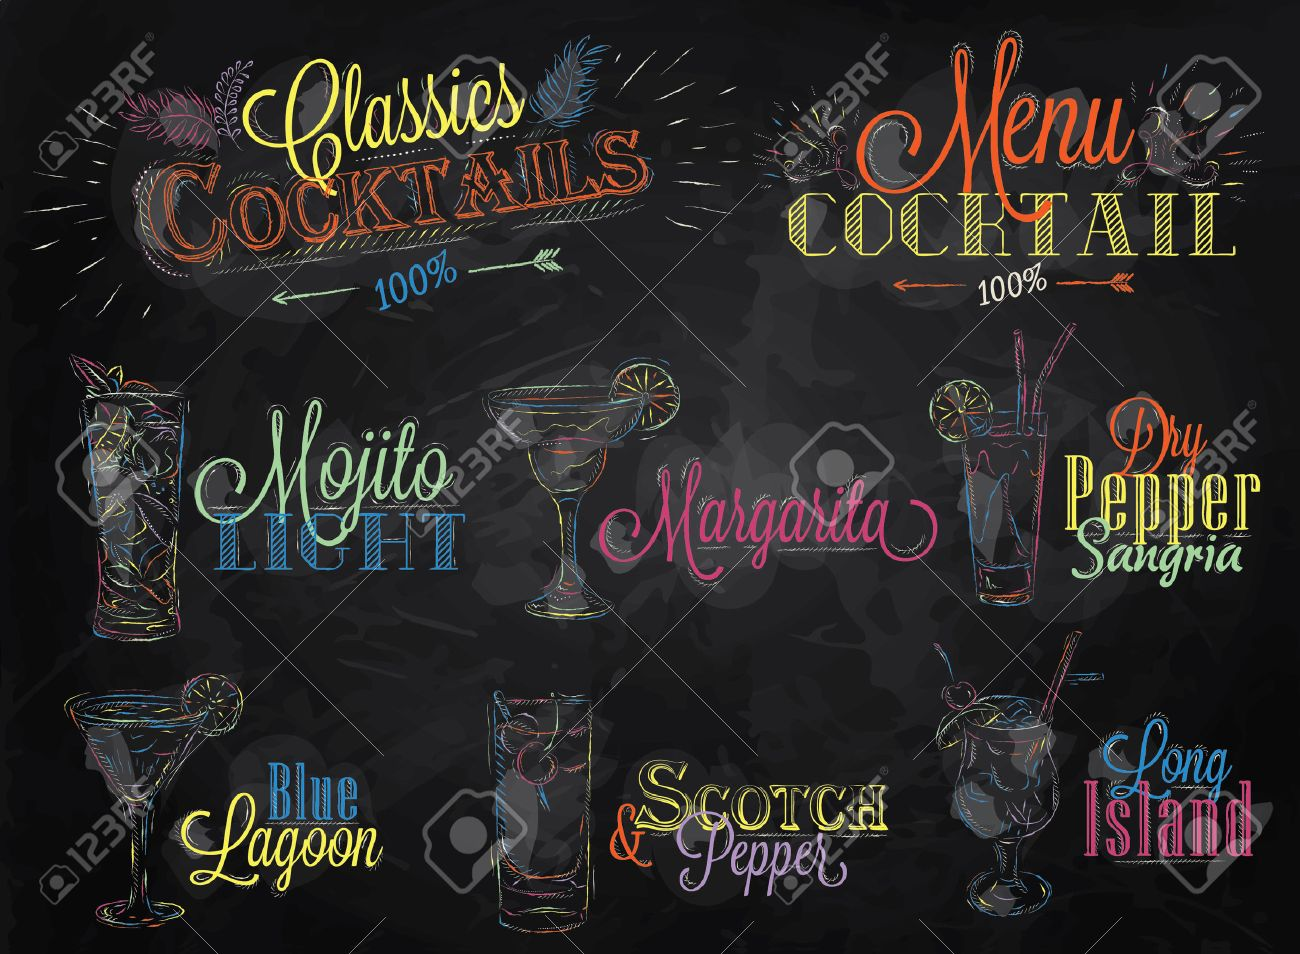 Set of cocktail menu in vintage style stylized drawing of colored chalk on a school blackboard, Cocktails with illustrated, the blue lagoon margarita Scotch Stock Vector - 25699860